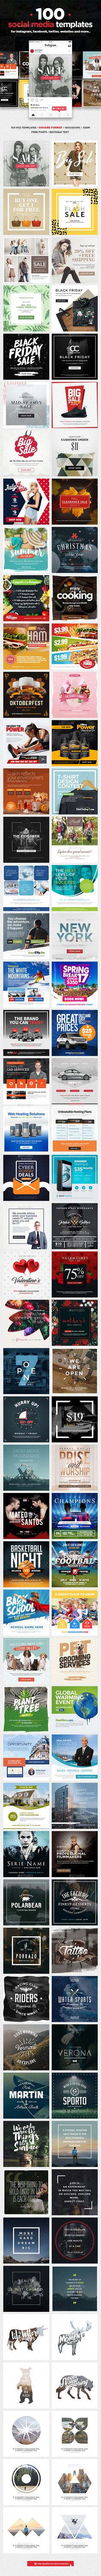 100 #Social Media #Templates - Social Media Web Elements Download here: https://graphicriver.net/item/100-social-media-templates/19475656?ref=alena994